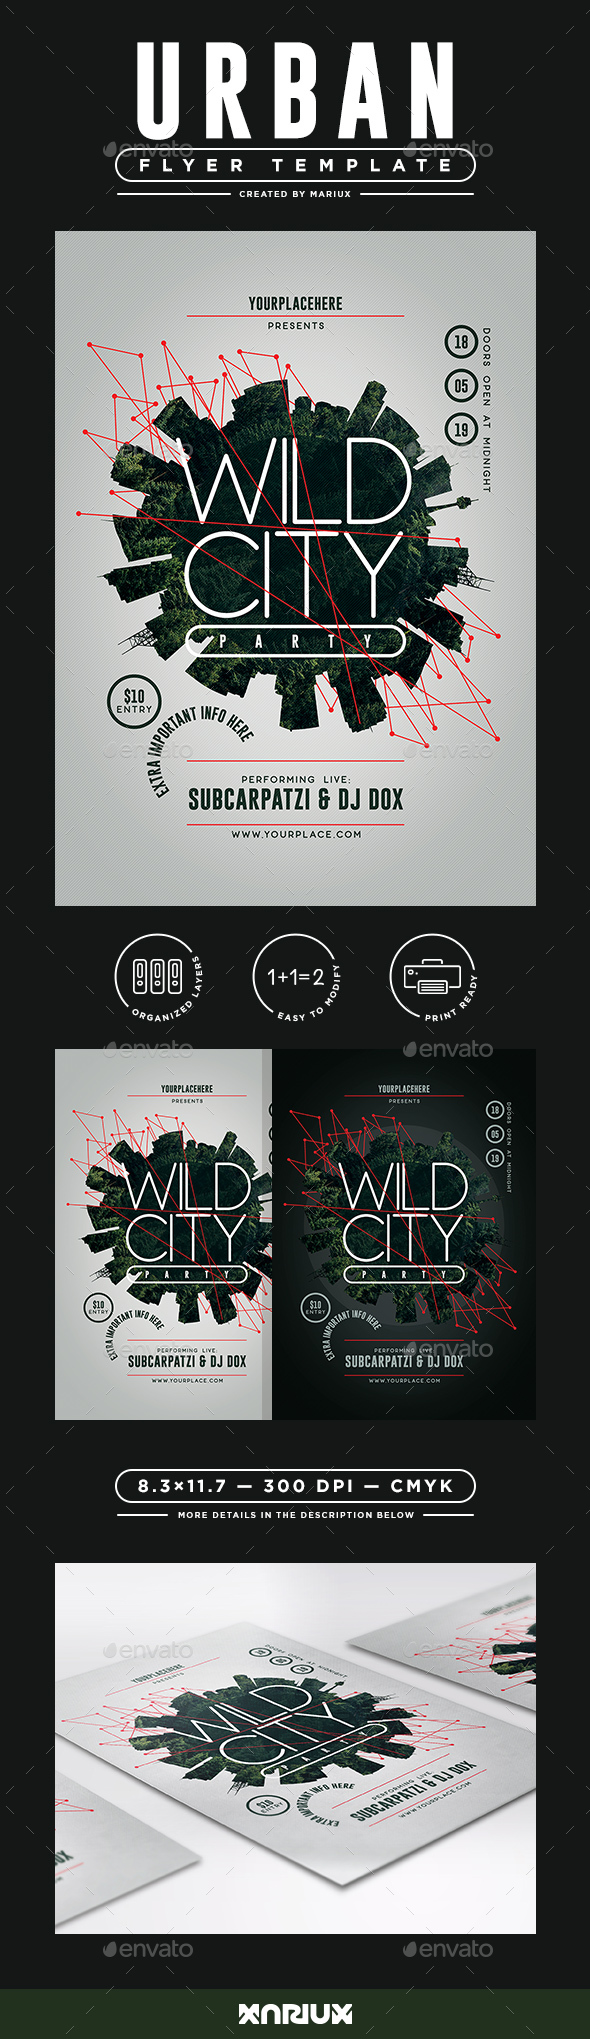 Wild City Flyer/Poster - Clubs & Parties Events